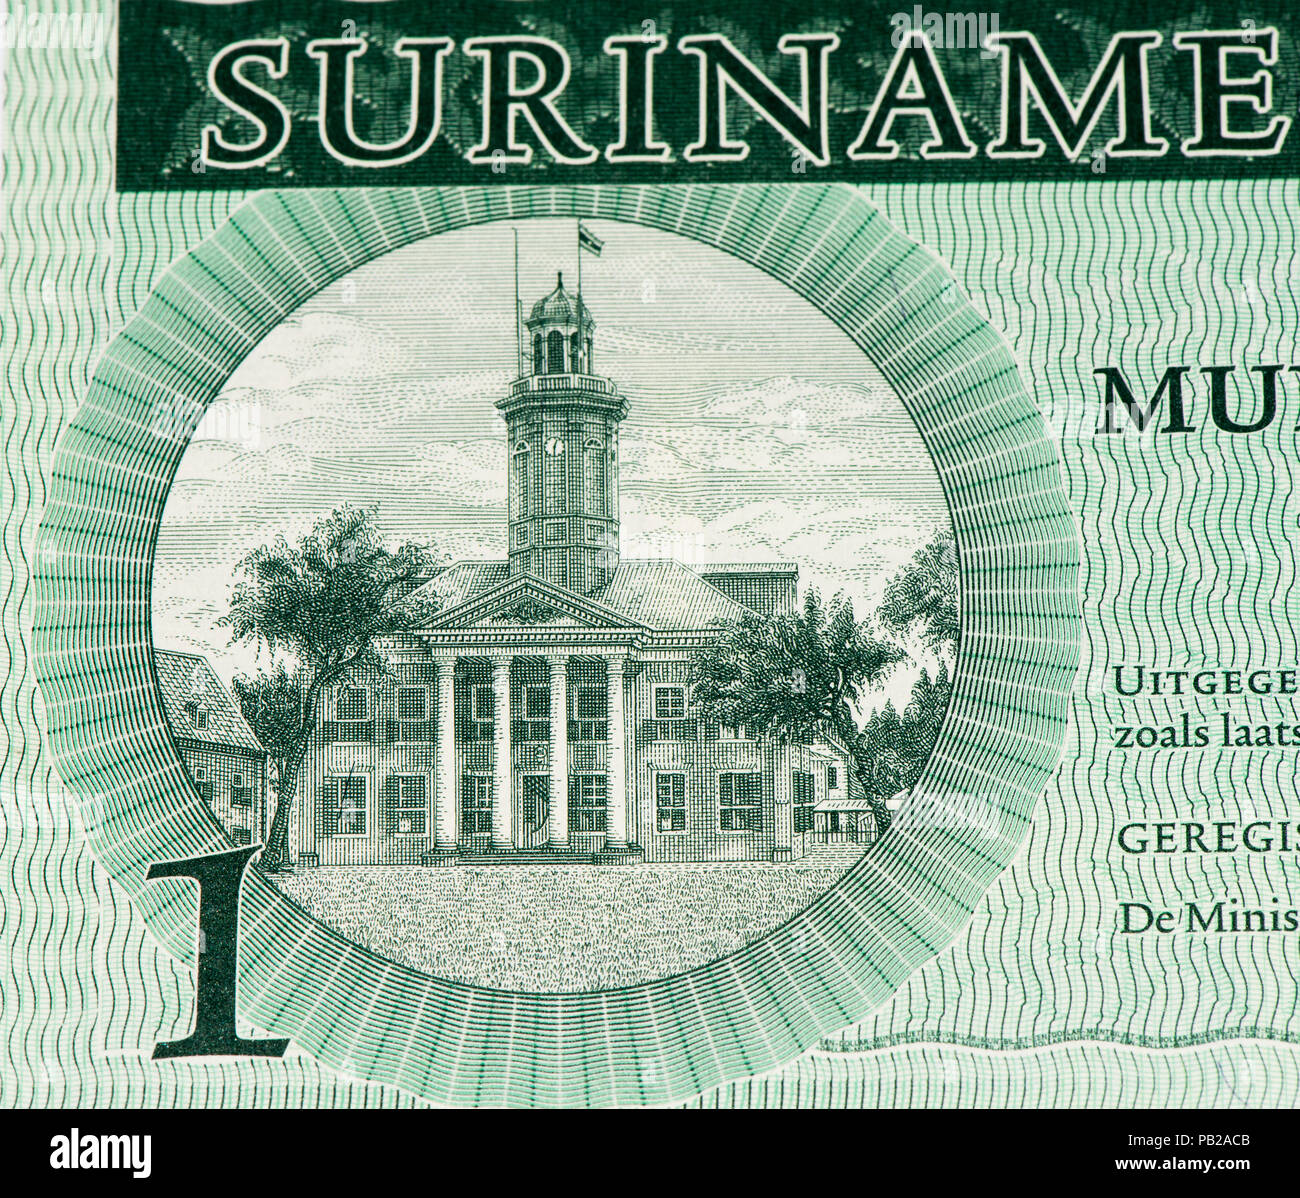 1 Surinamese dollar bank note. Surinamese dollar is the national currency of Suriname - Stock Image